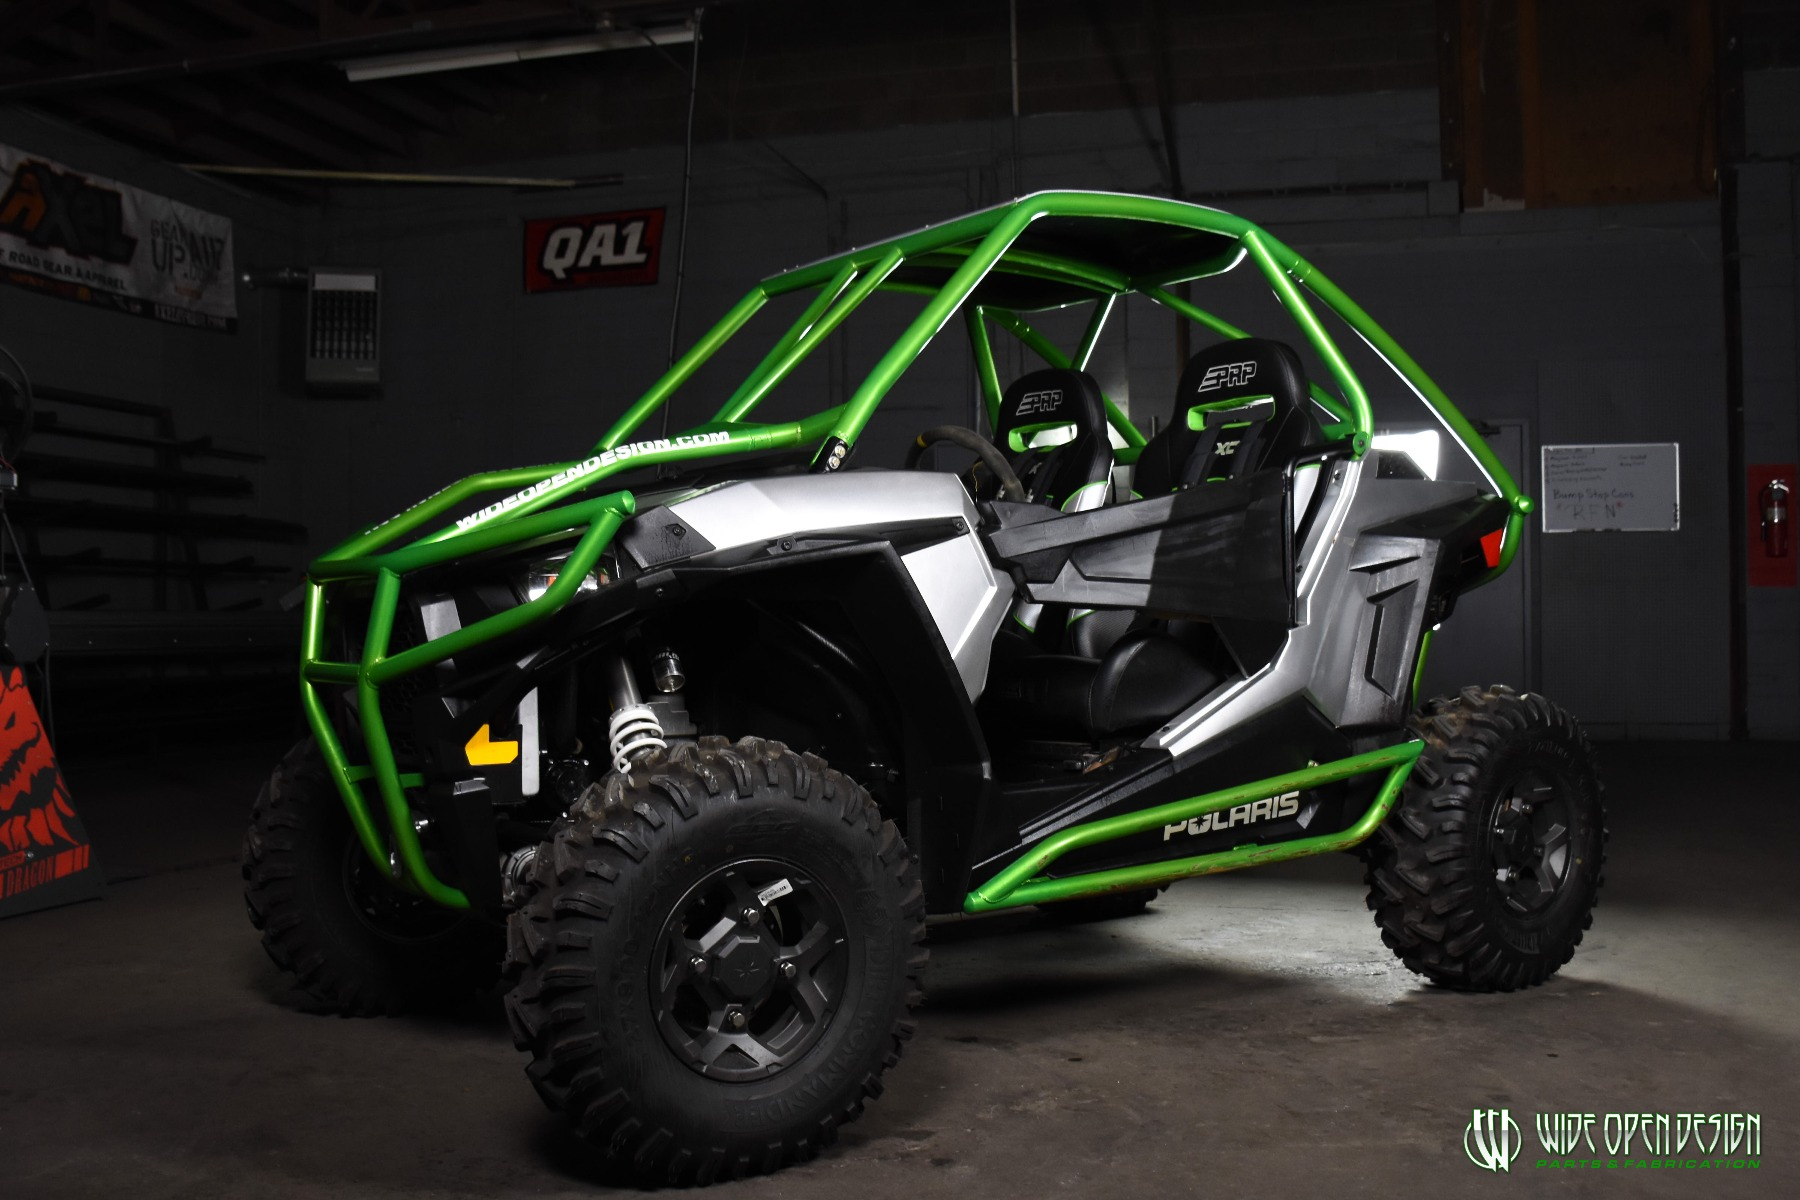 Jason's 1000s RZR with Wide Open Design Rolled Roof Cage, Front Bumper with Tie In, and Rocker Guards 1